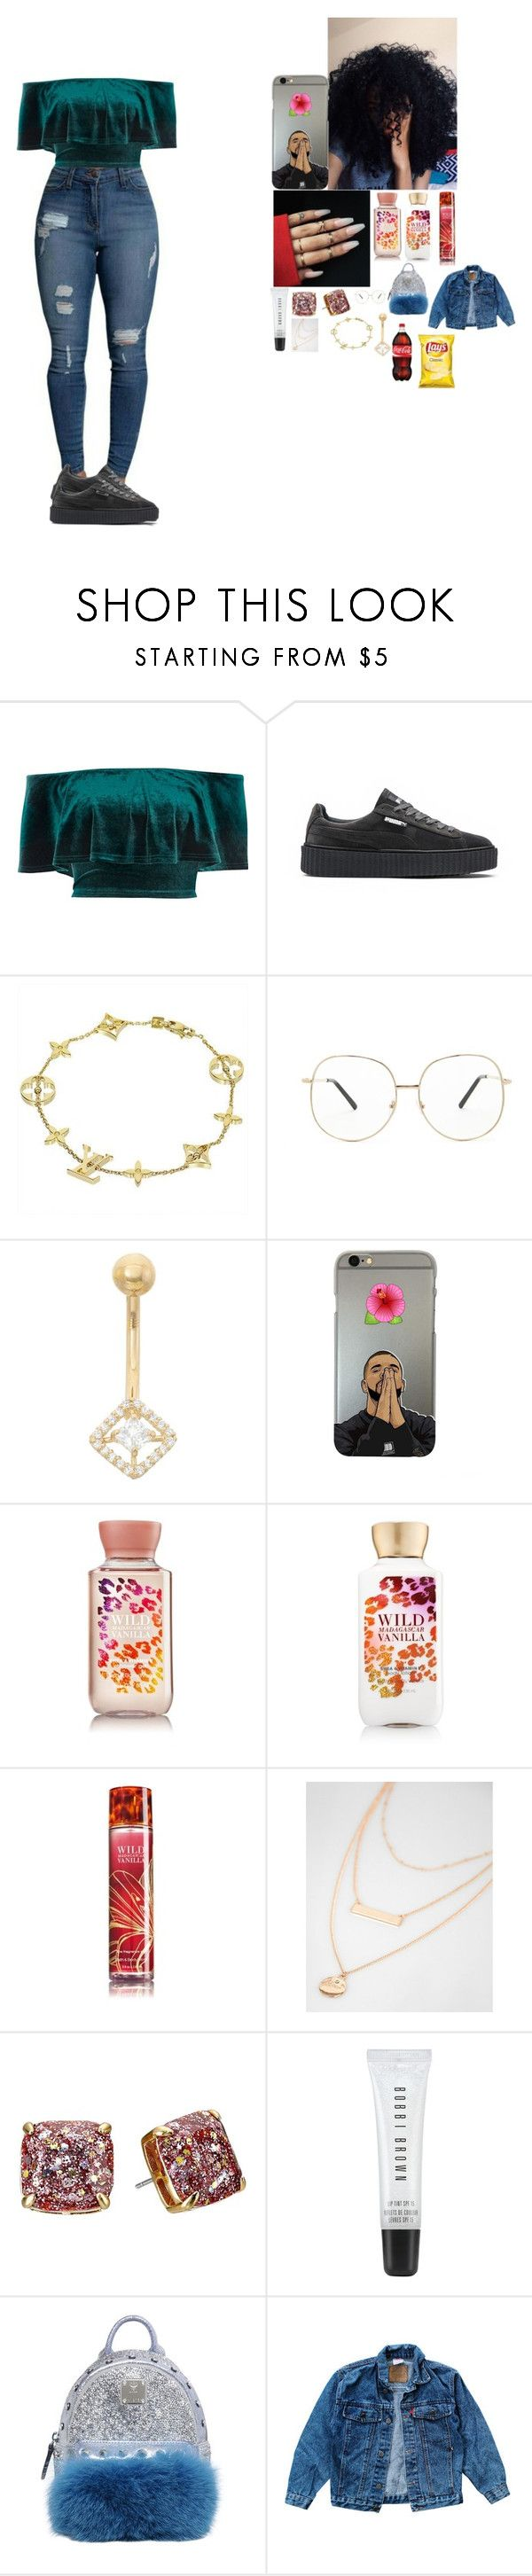 """~ school outfit ~"" by foodislyfe ❤ liked on Polyvore featuring River Island, Puma, Louis Vuitton, Forever 21, Gioelli, Wet Seal, Kate Spade, Bobbi Brown Cosmetics, MCM and Levi's"